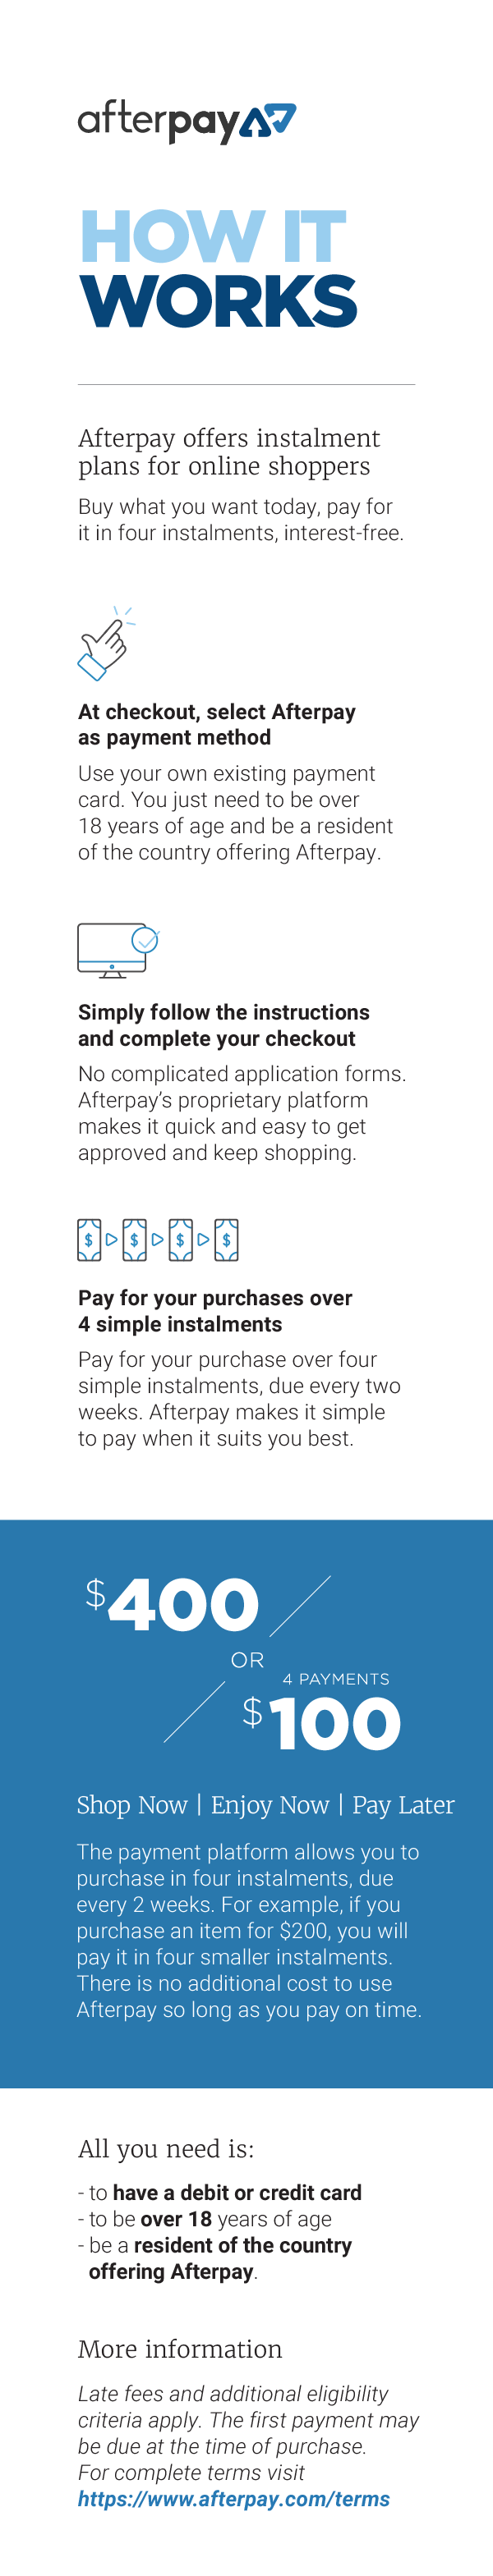 Afterpay - How it Works - For Mobile